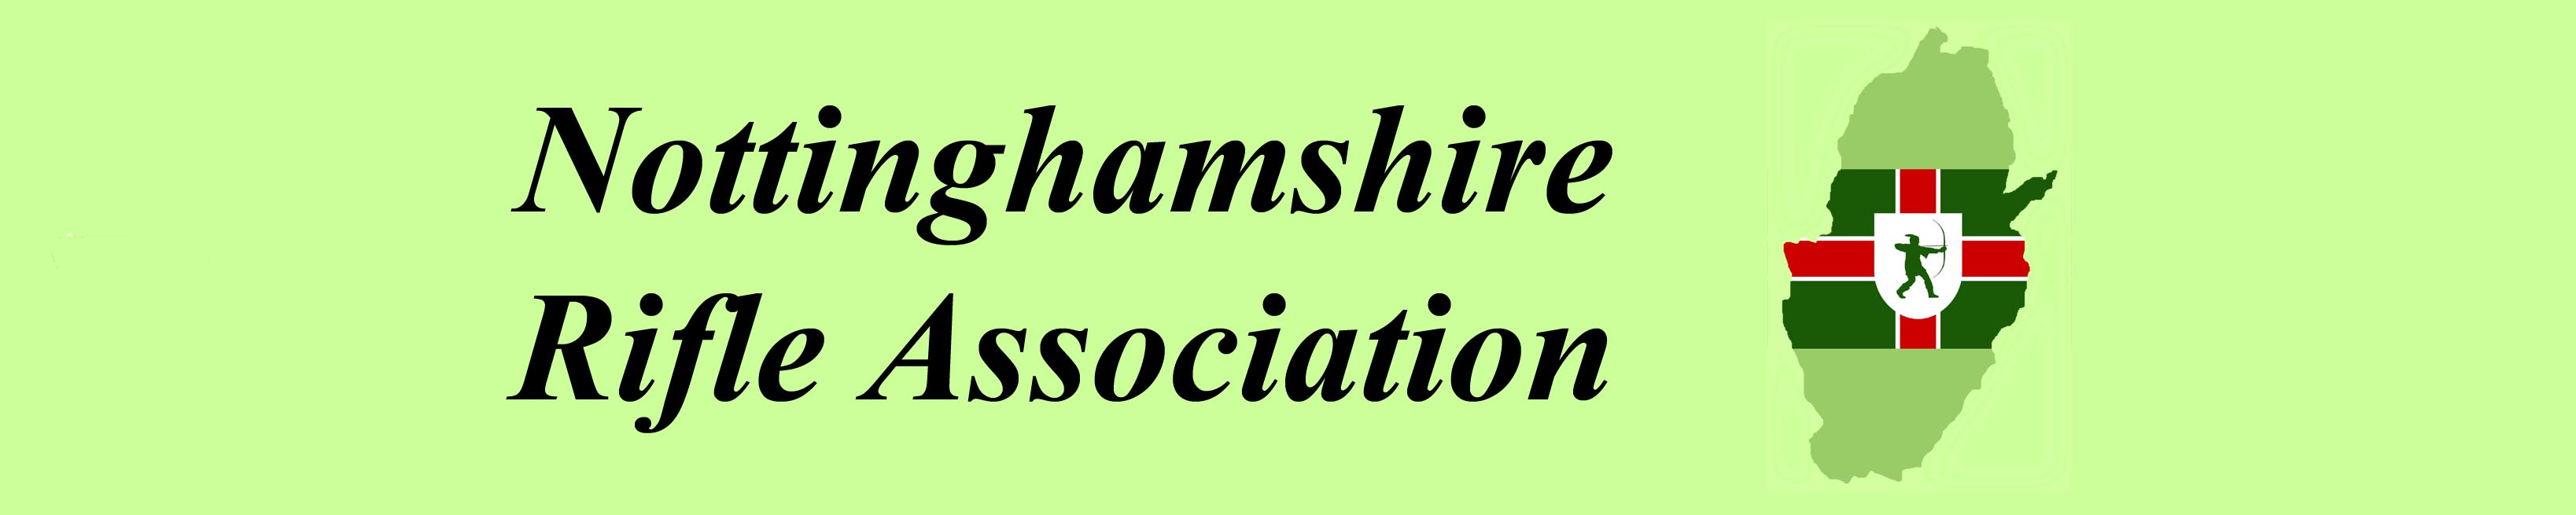 Nottinghamshire Rifle Association